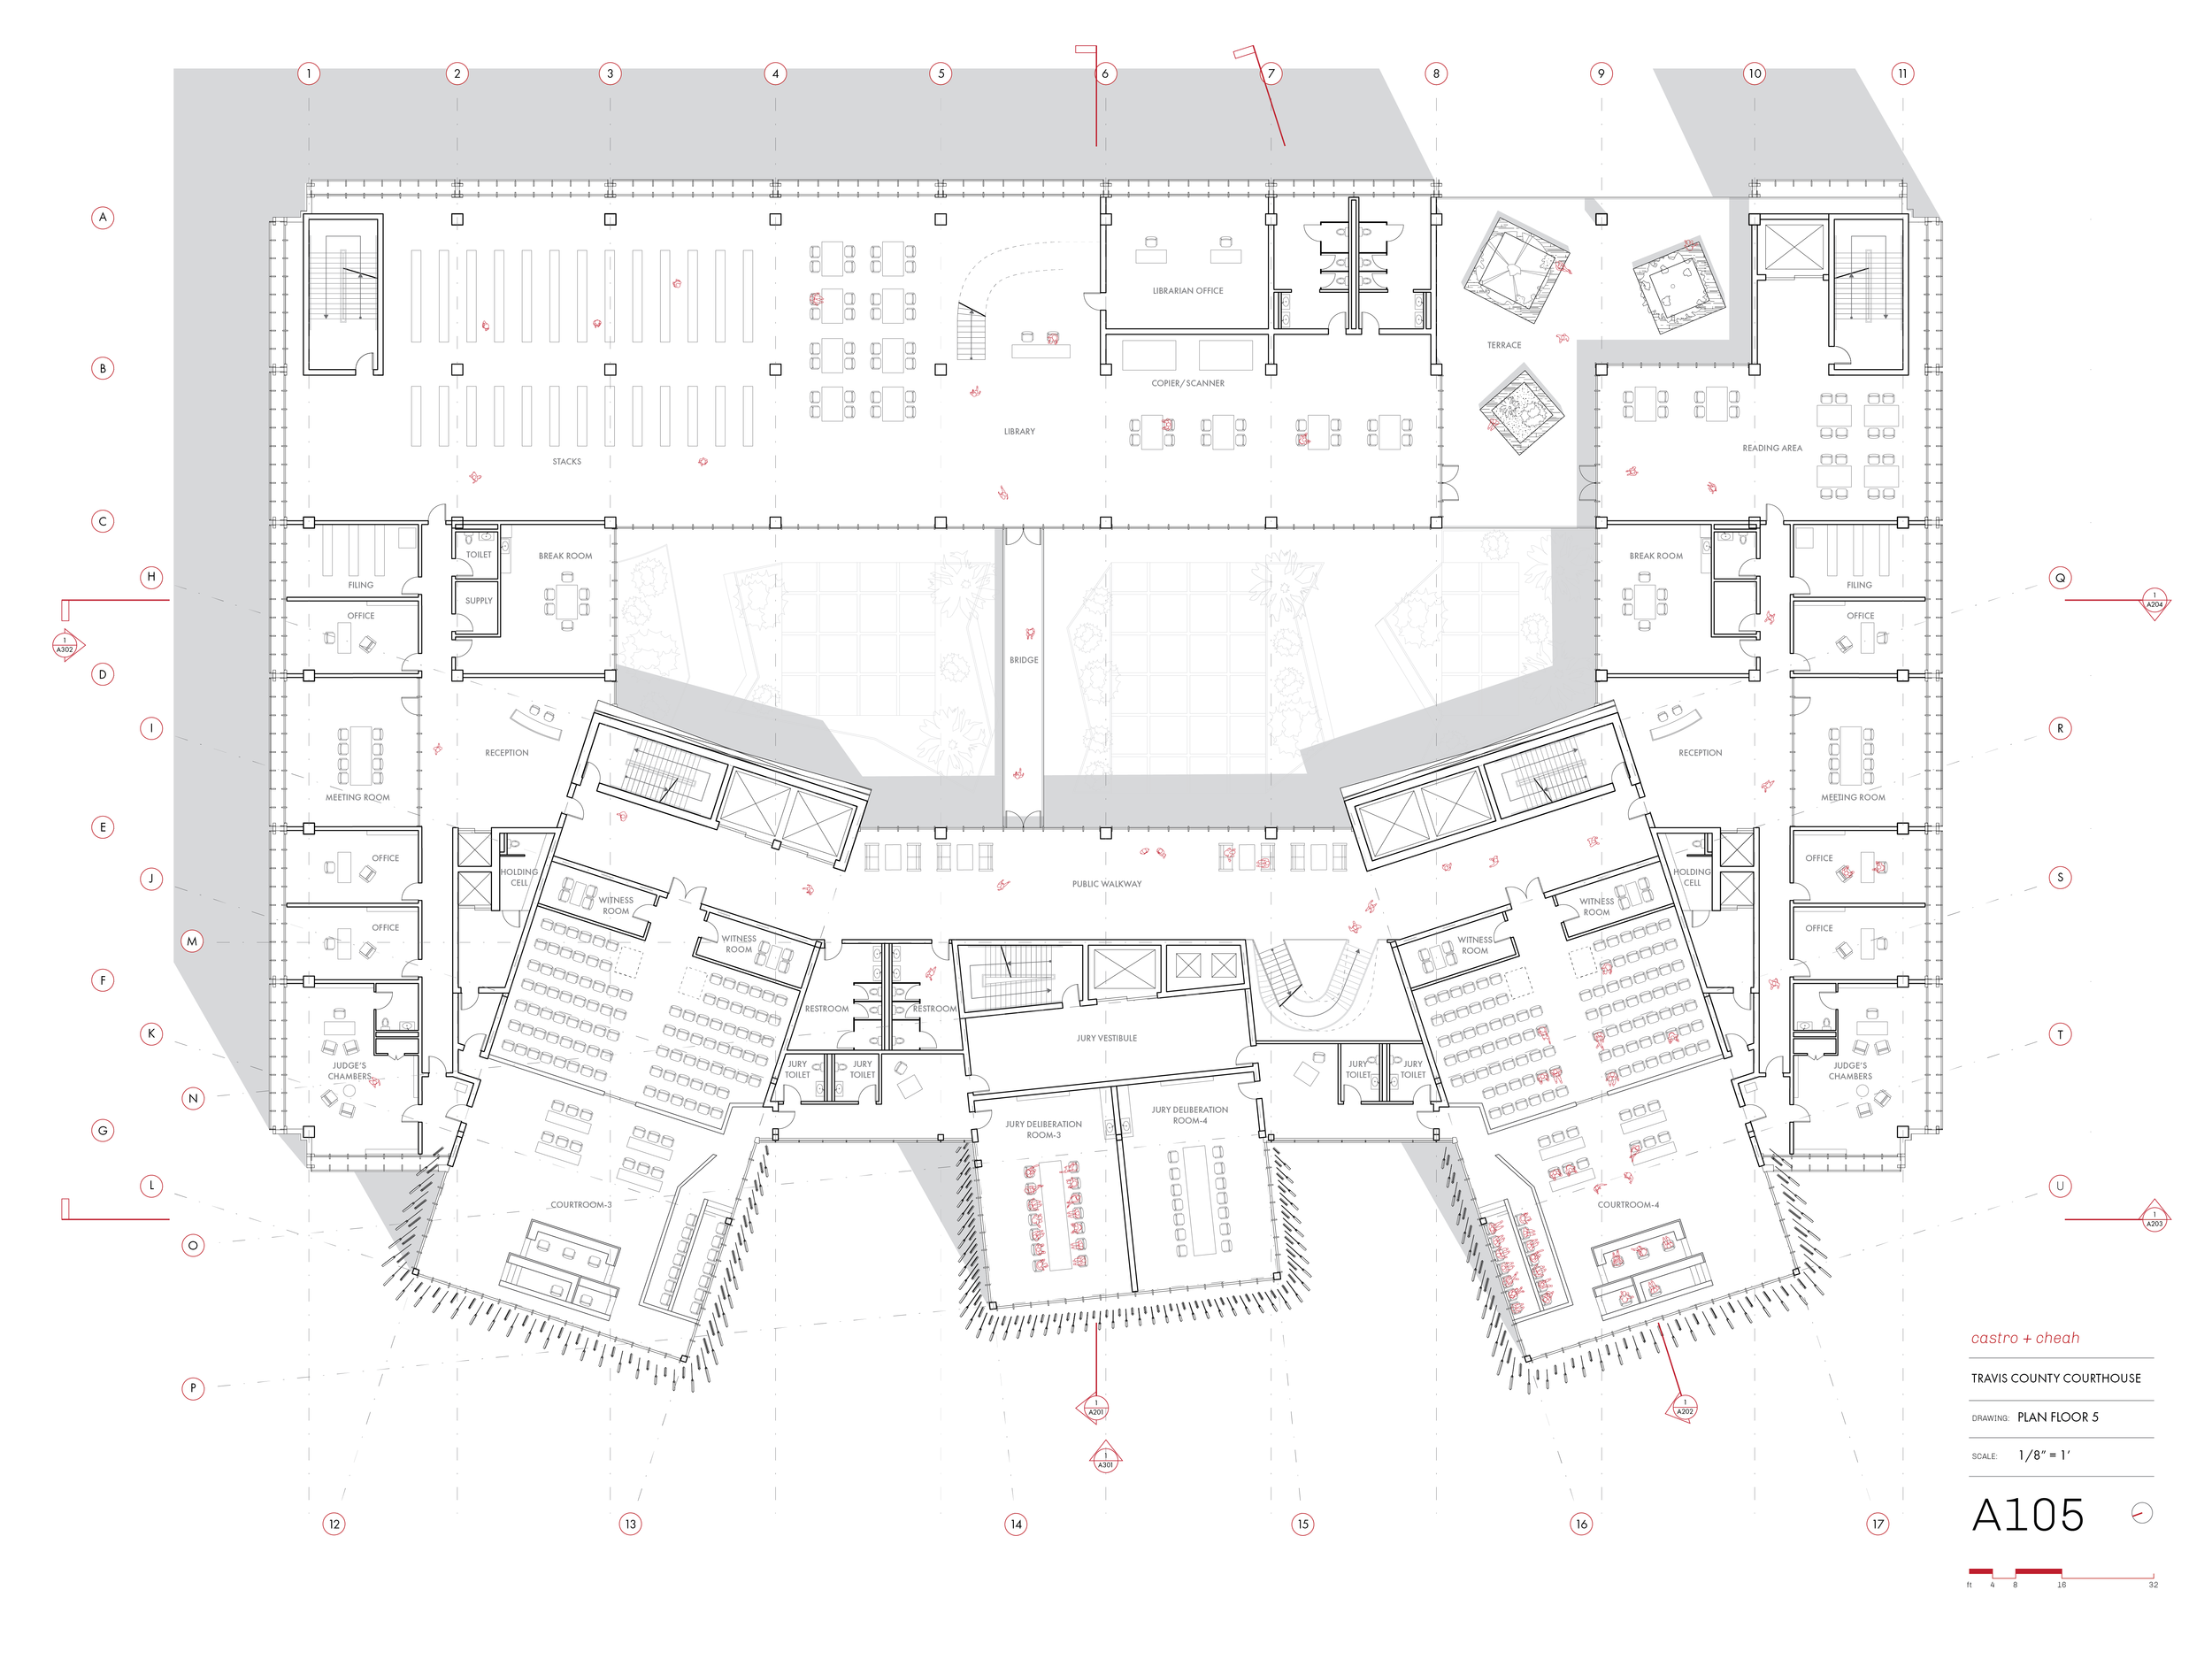 A105_FloorPlan05-01.png